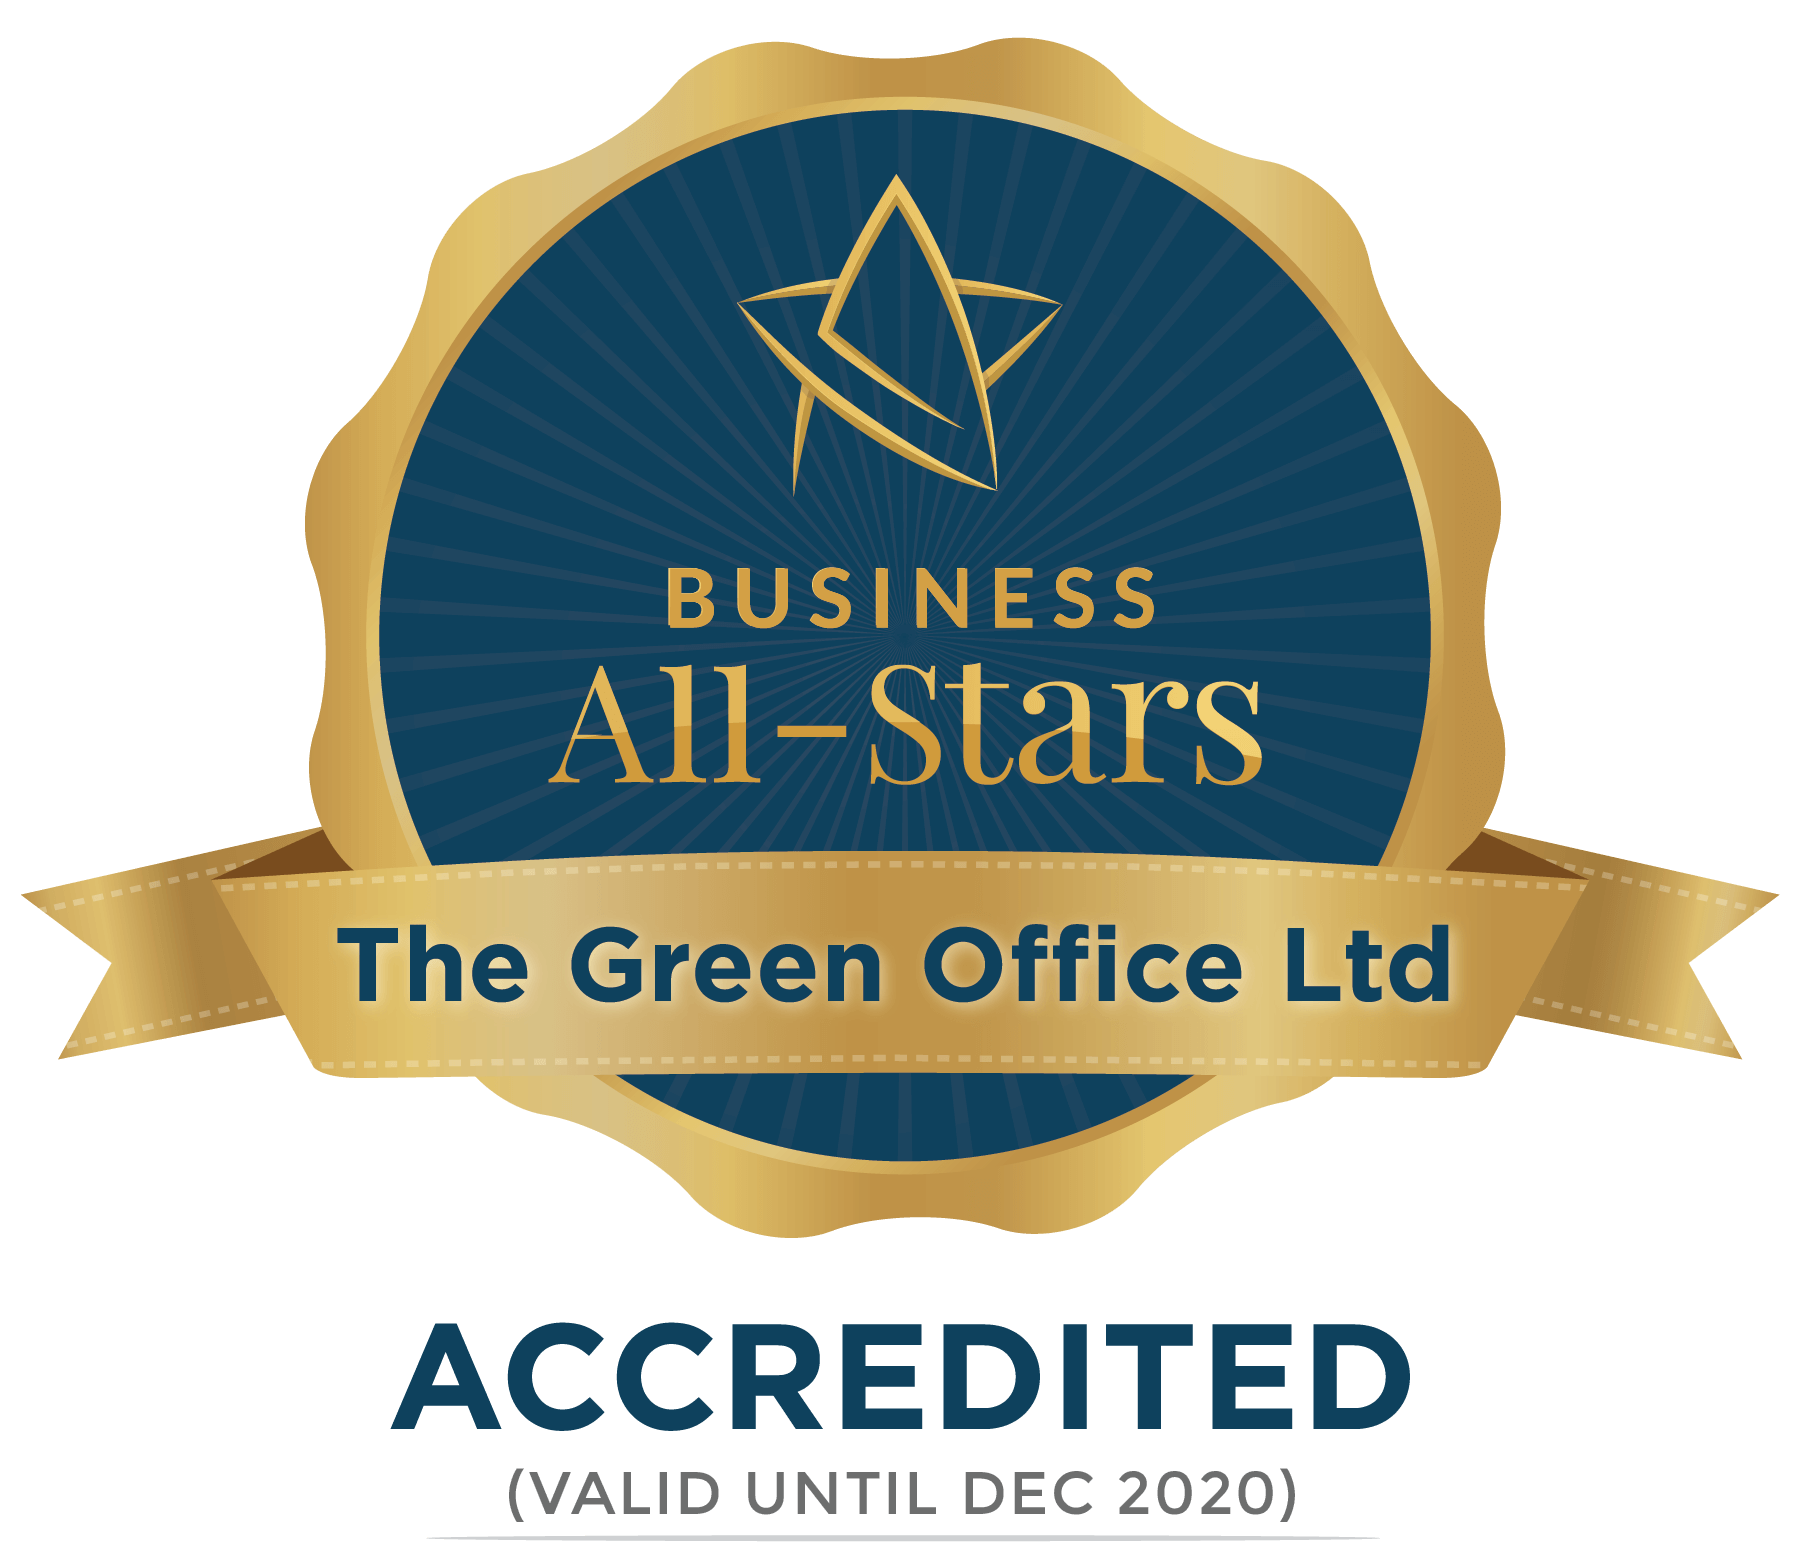 The Green Office Ltd - Business All-Stars Accreditation